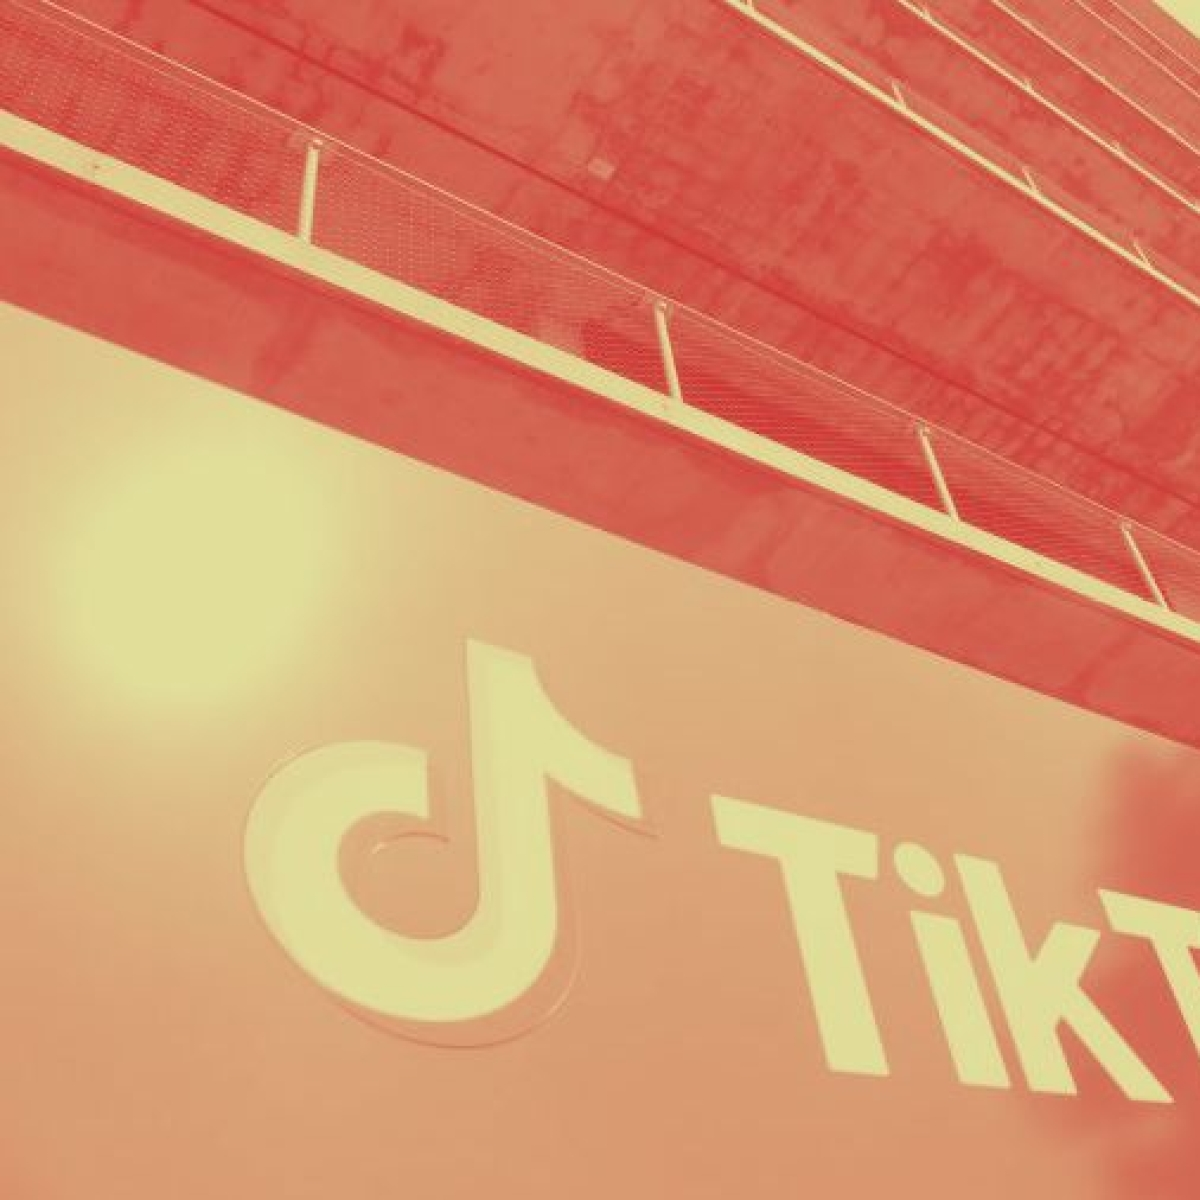 TikTok lays off several workers in India after permanent ban